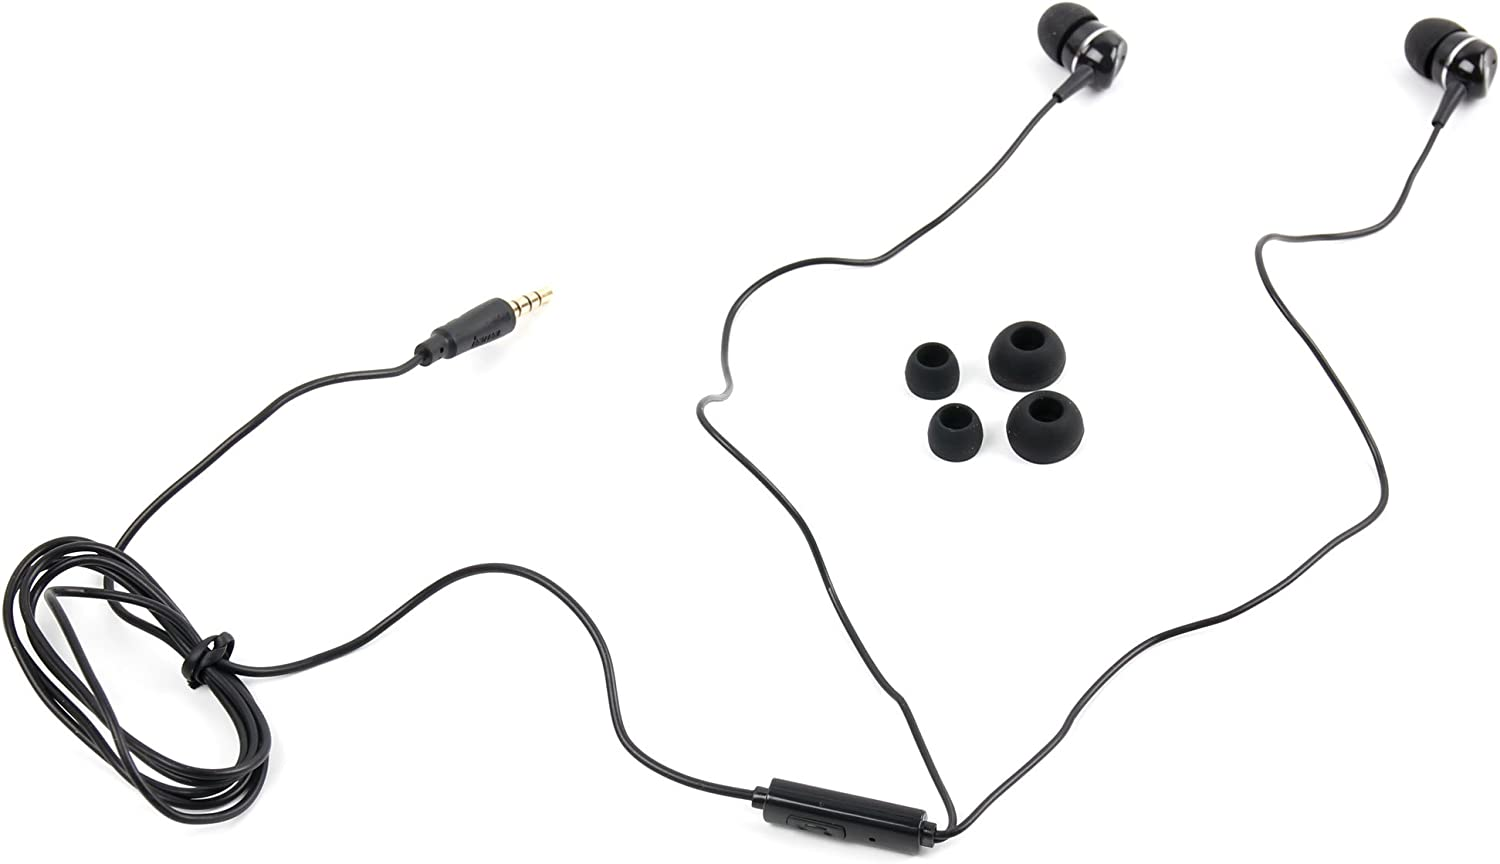 DURAGADGET Premium Quality in-Ear Headphones with Deep Bass & Clear Highs - Compatible with The Acer Chromebook 15 (CB5-571-C4G4)